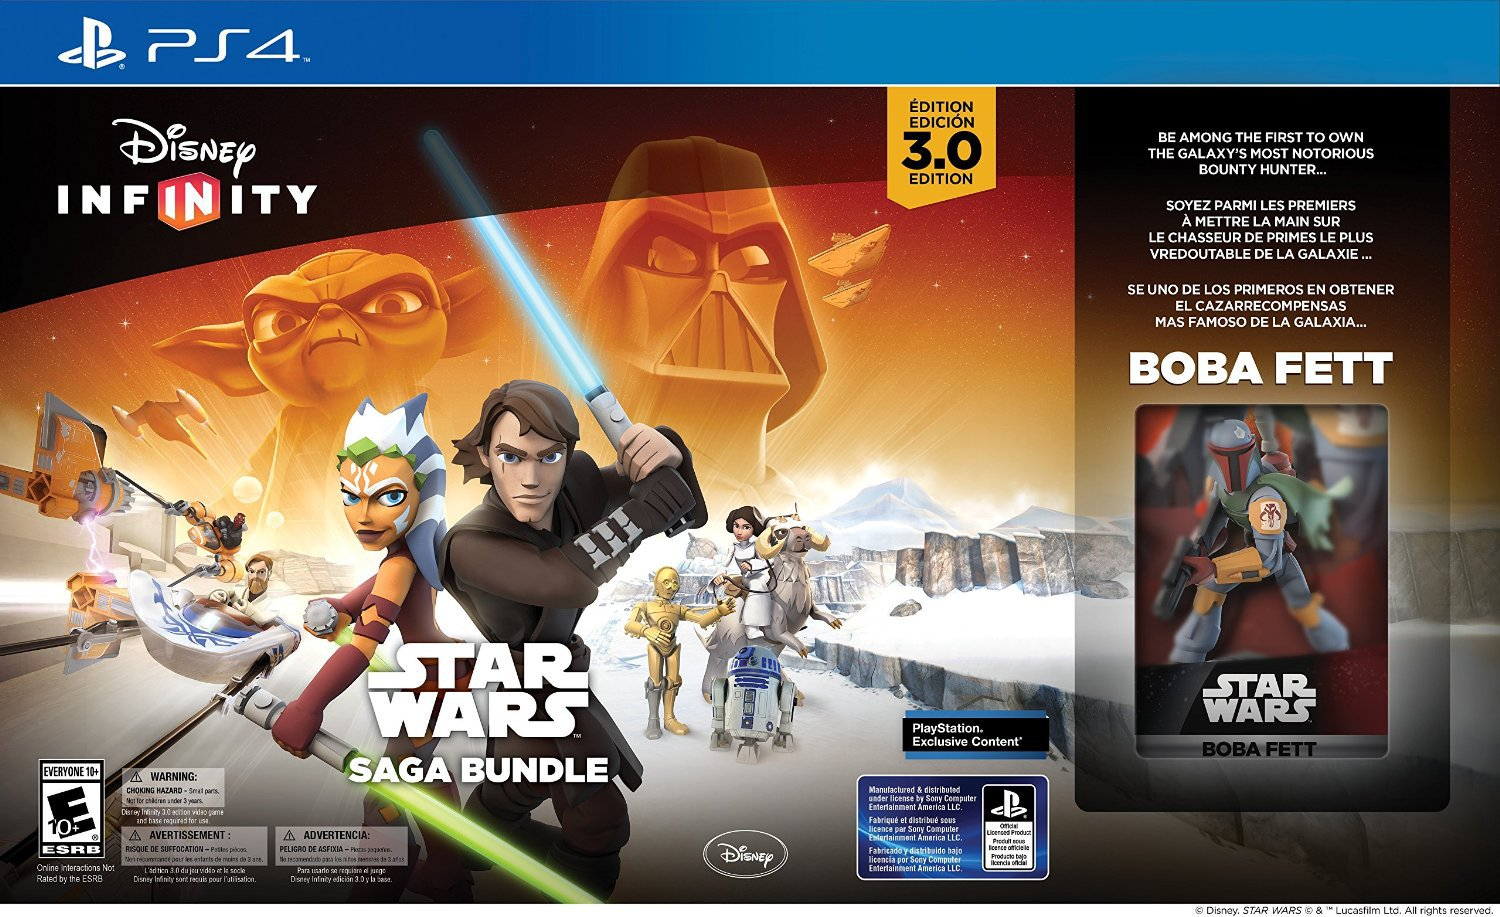 NEW! PlayStation 4 Disney Infinity 3.0 Edition: Star Wars Saga Bundle!